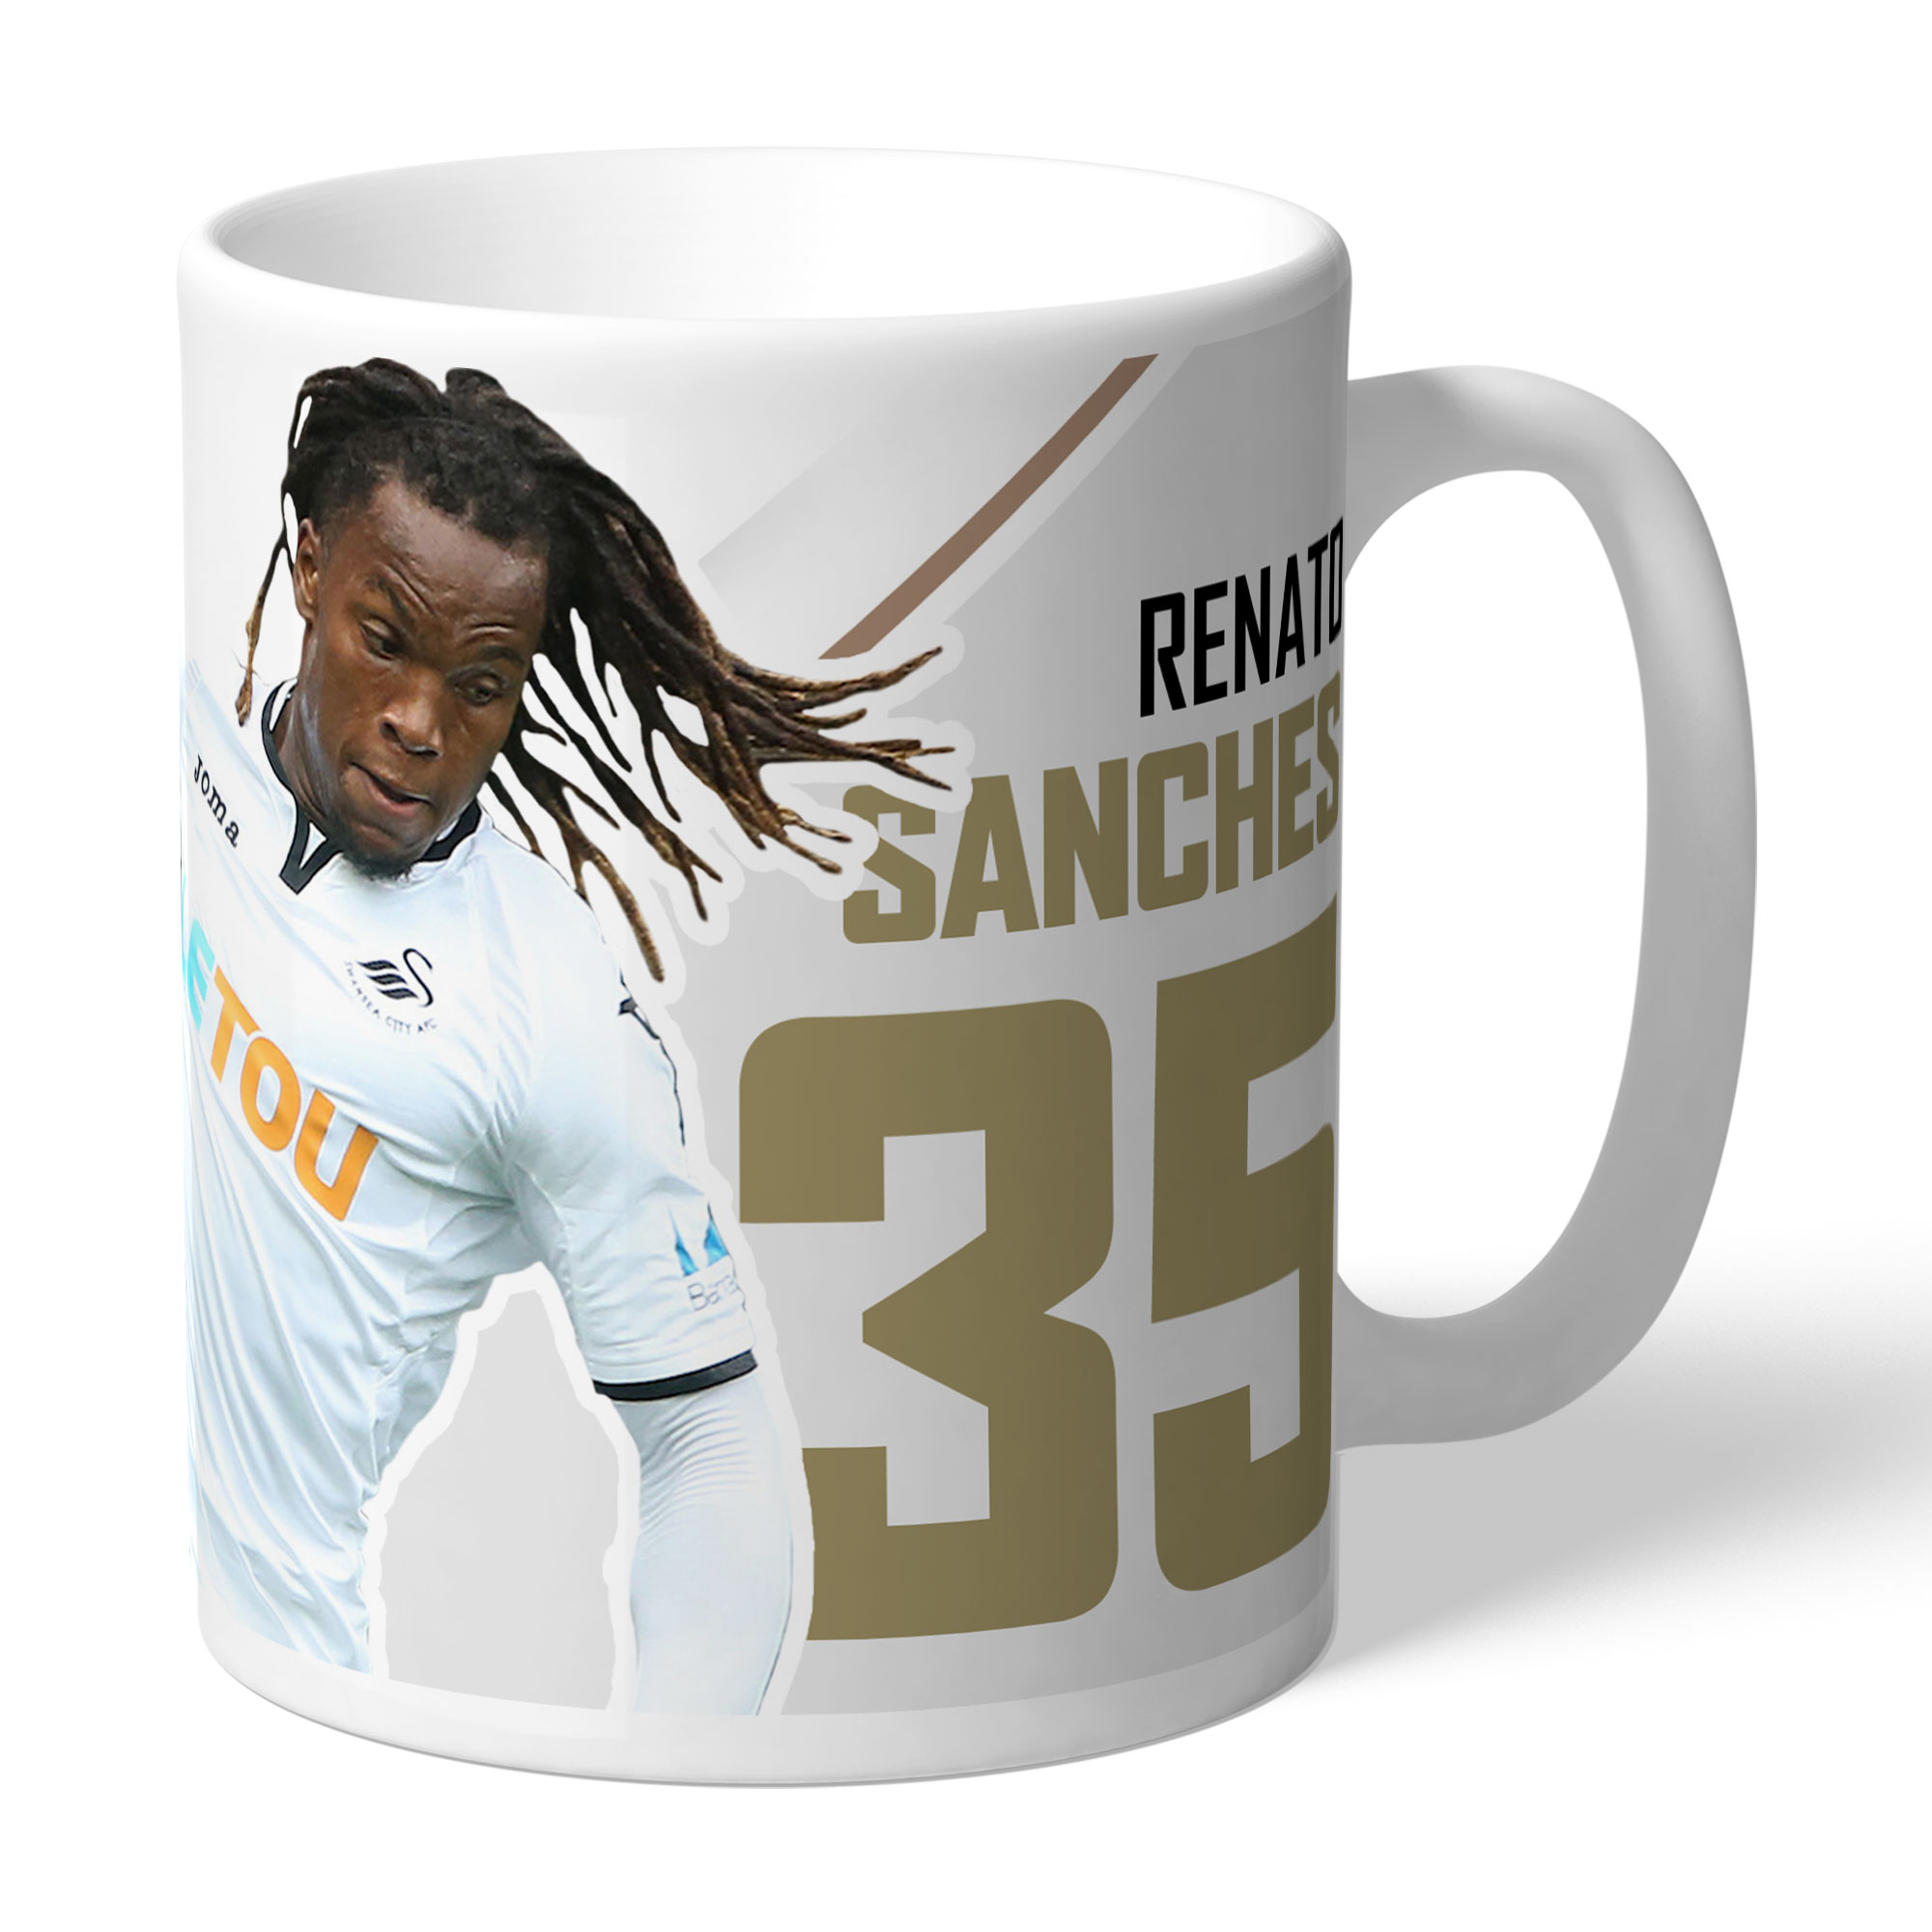 Swansea City AFC Sanches Autograph Mug